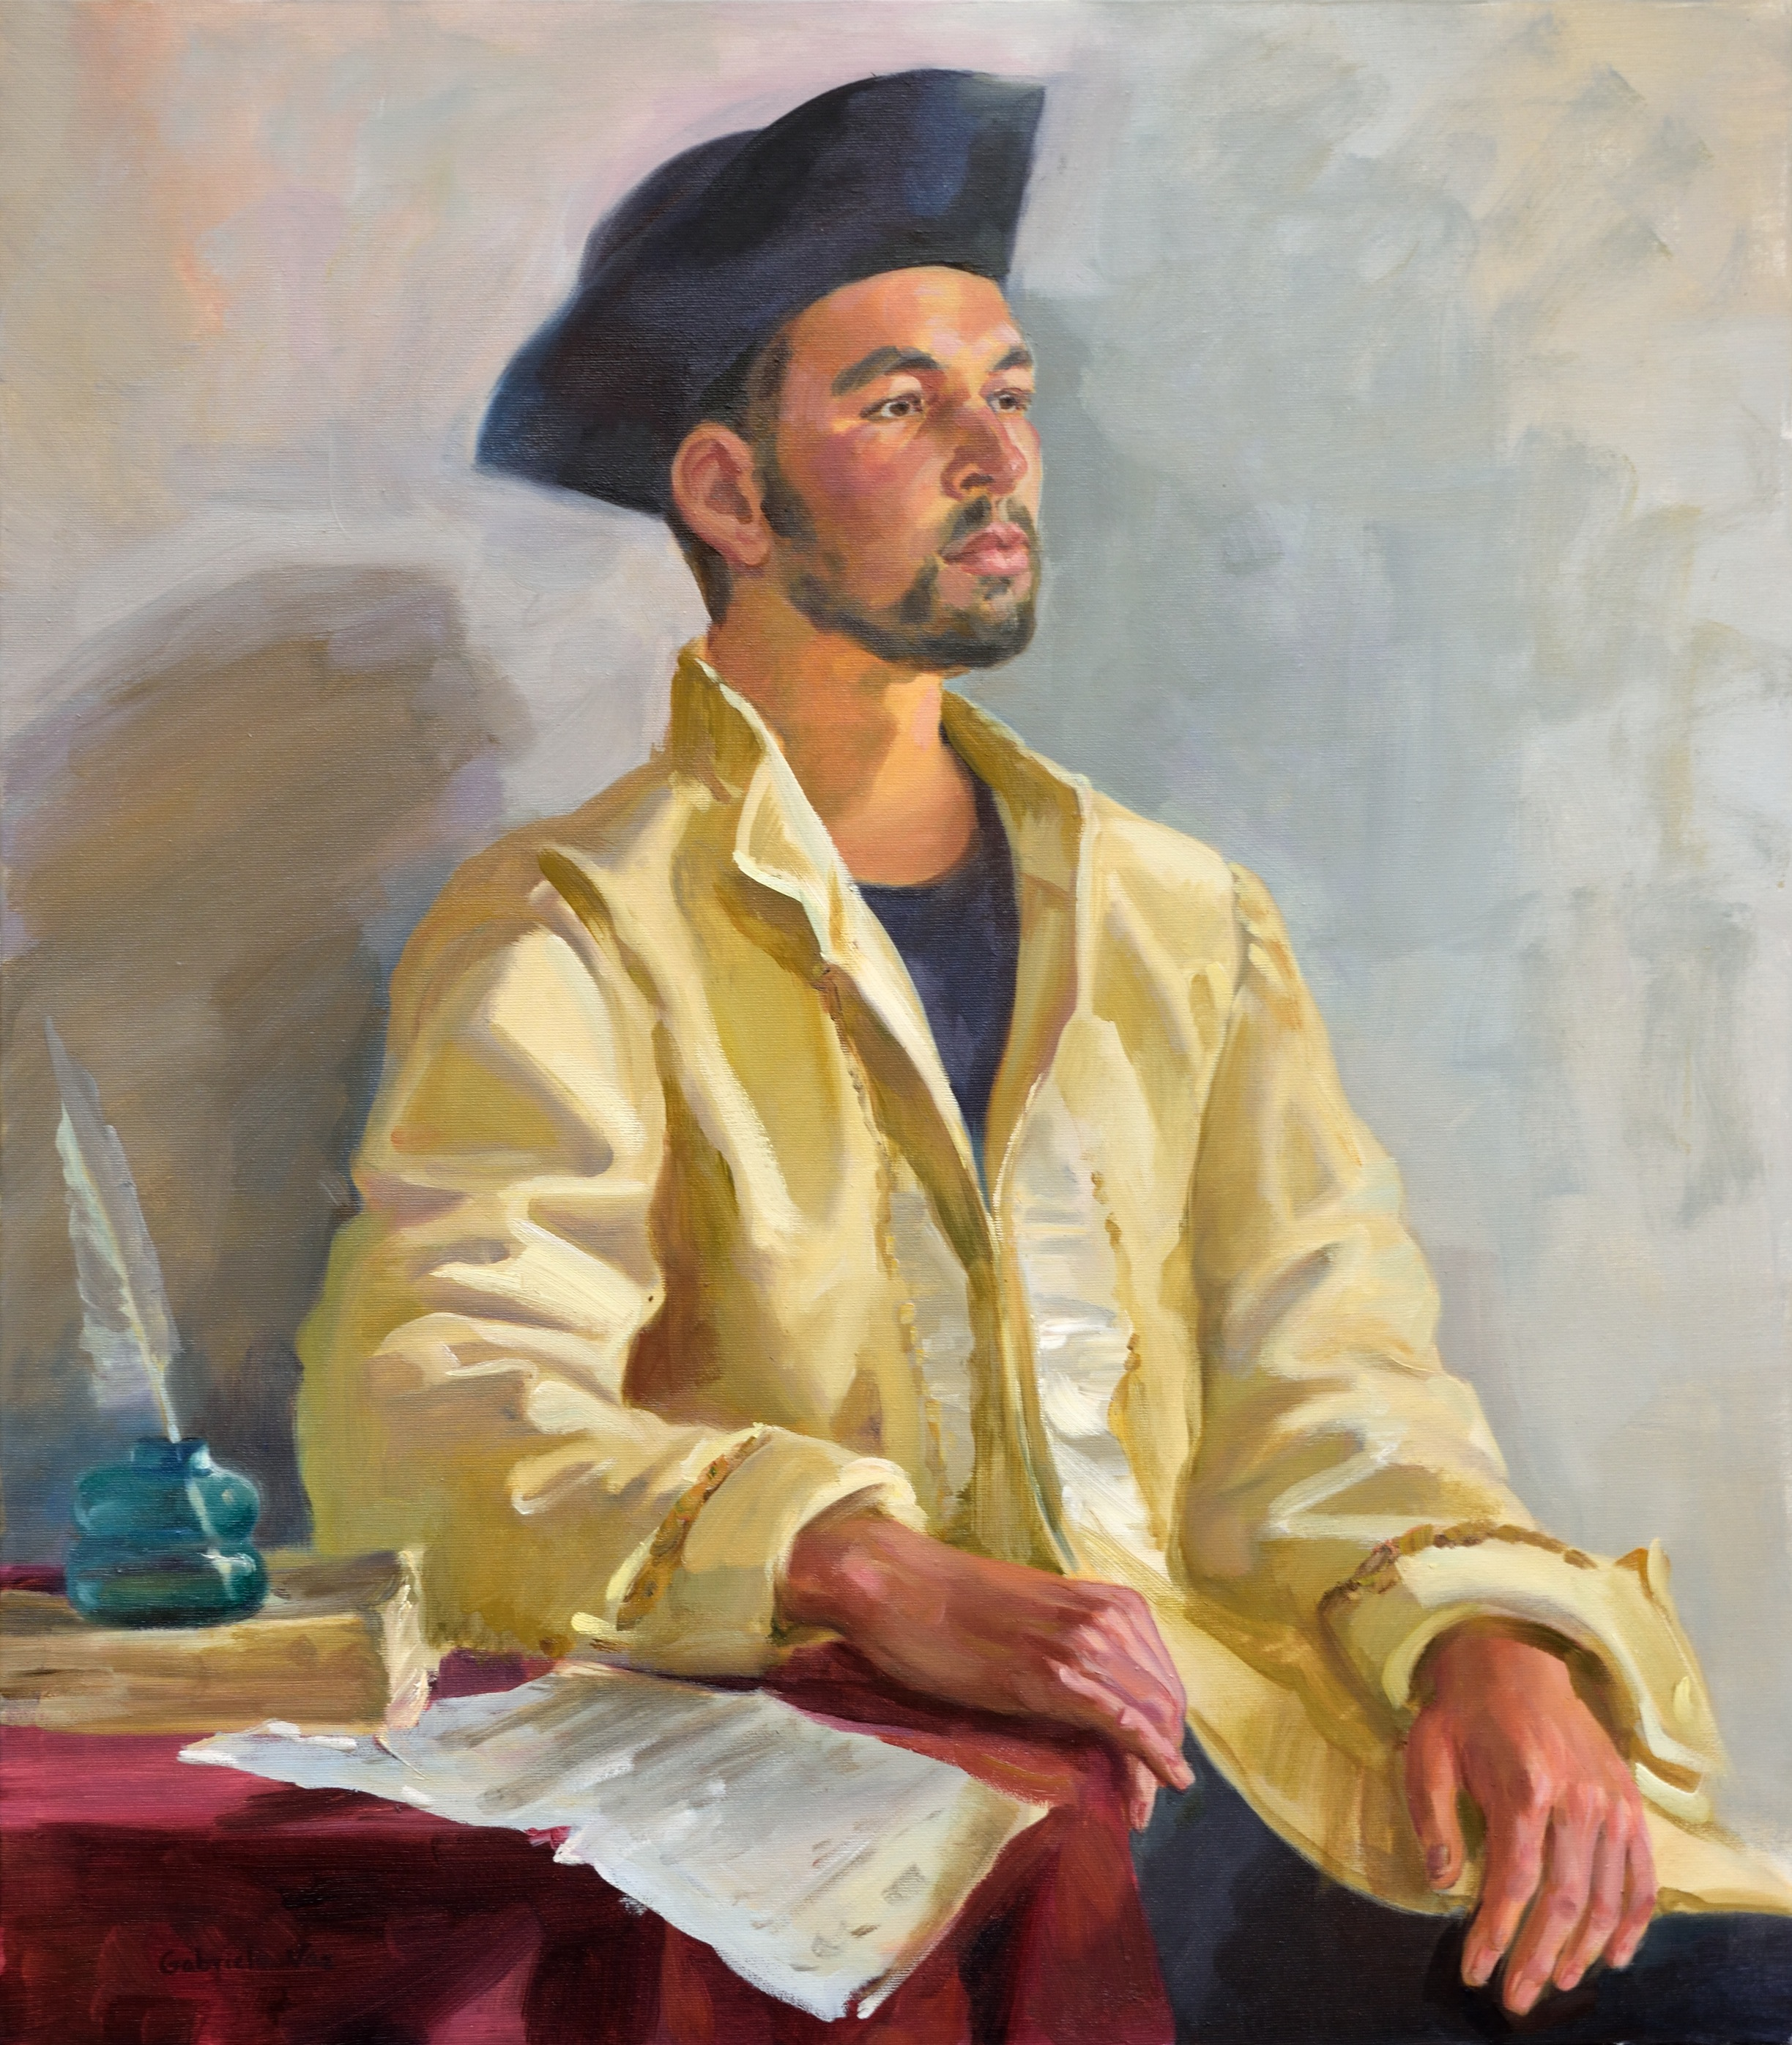 The captain, oil on canvas, 80 x 70 cm, 2018